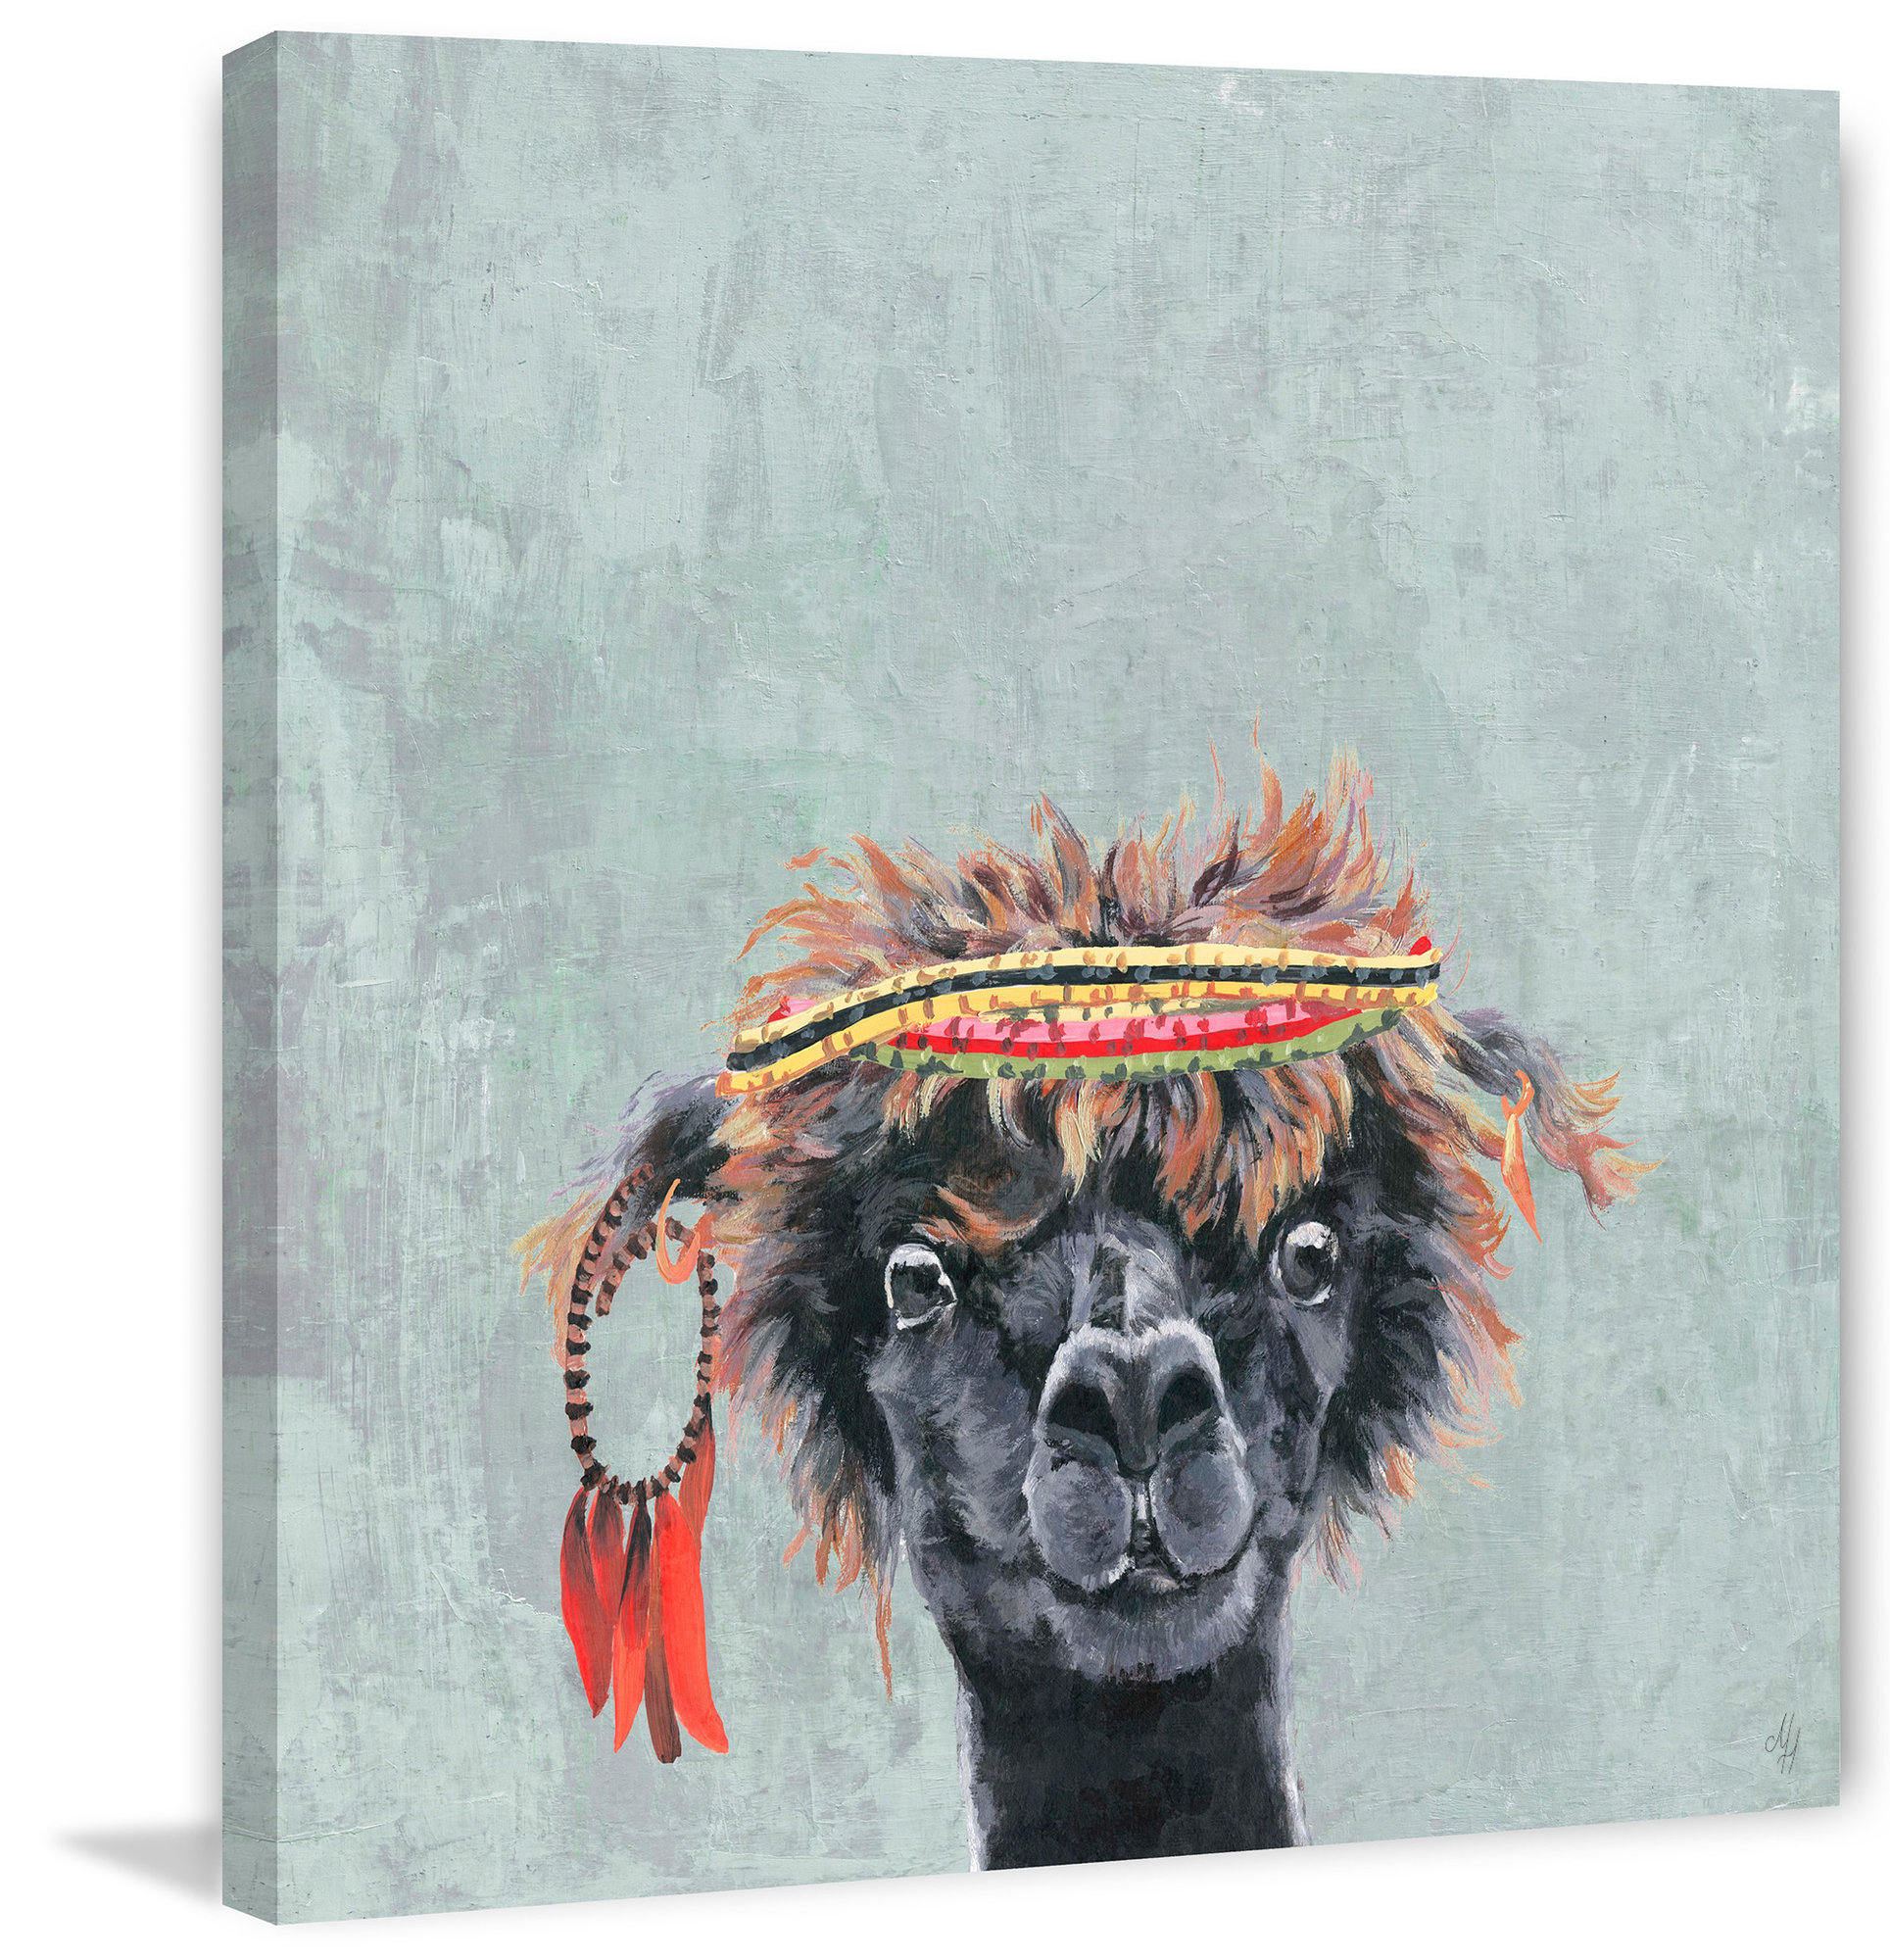 Details About Wrought Studio 'hippie Llama' Framed Acrylic Painting Print  On Canvas Intended For Rings Wall Decor By Wrought Studio (Photo 25 of 30)